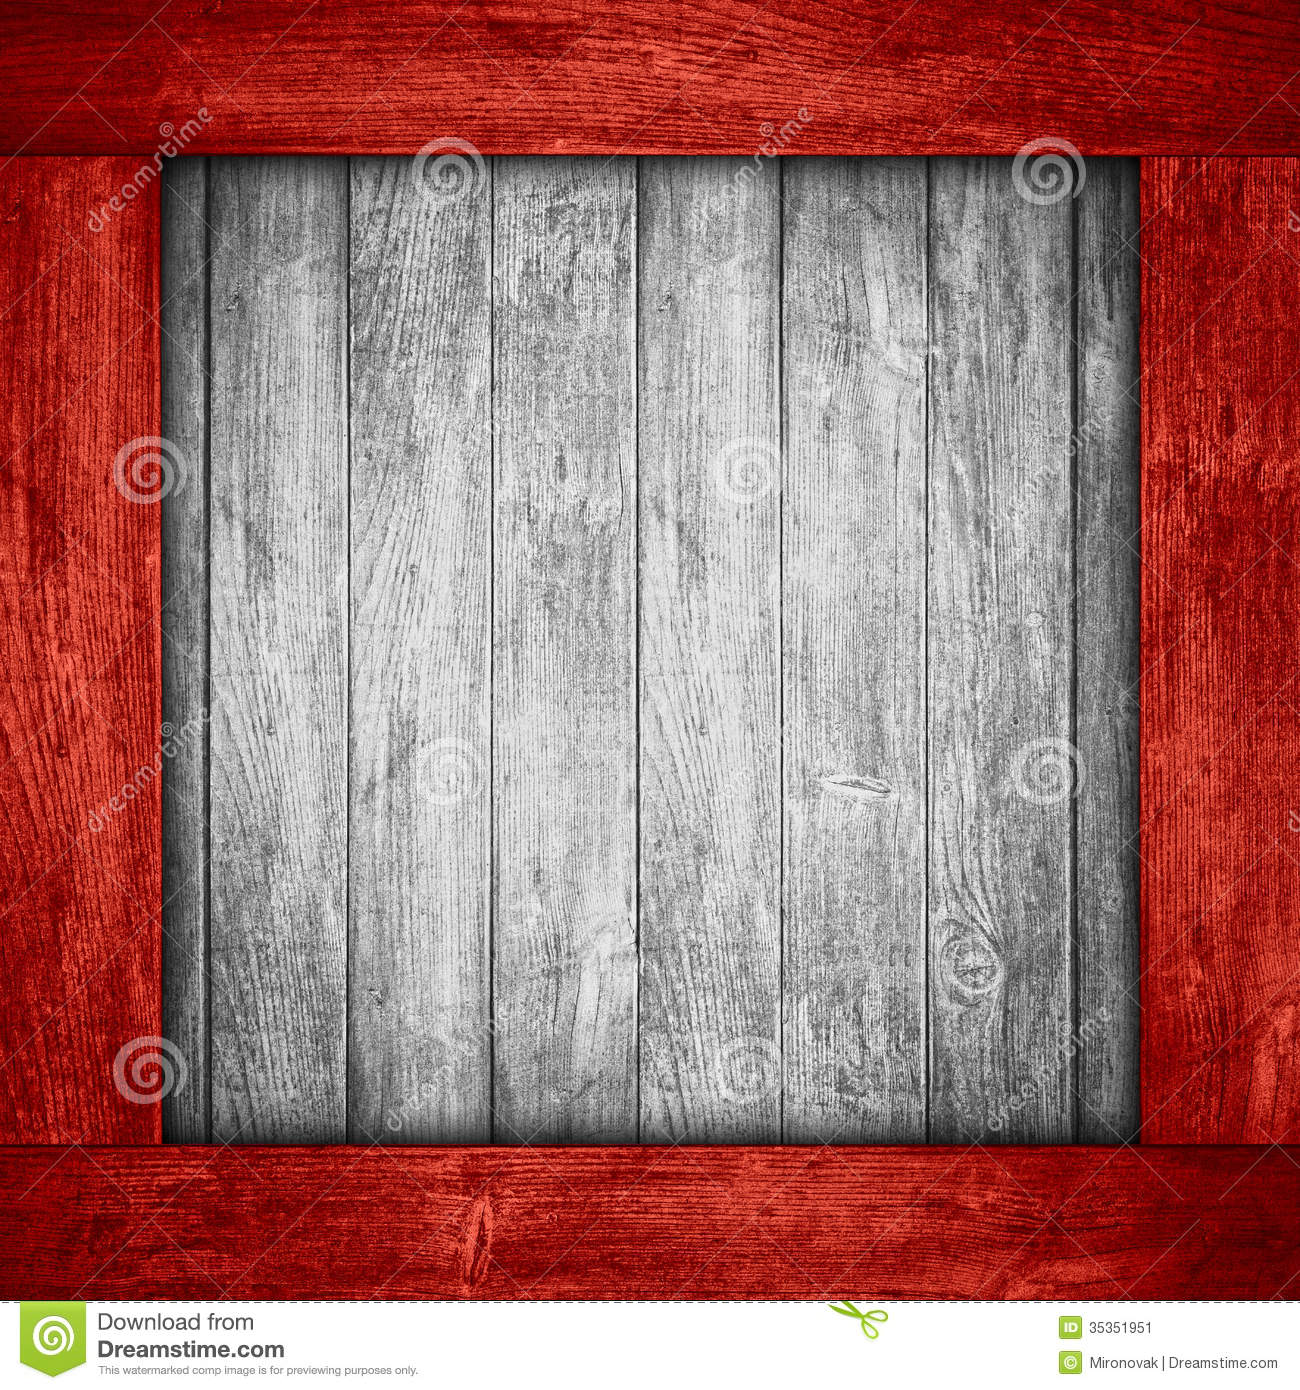 Wood Frame Texture : White wooden background in red wood frame or grey planks texture.